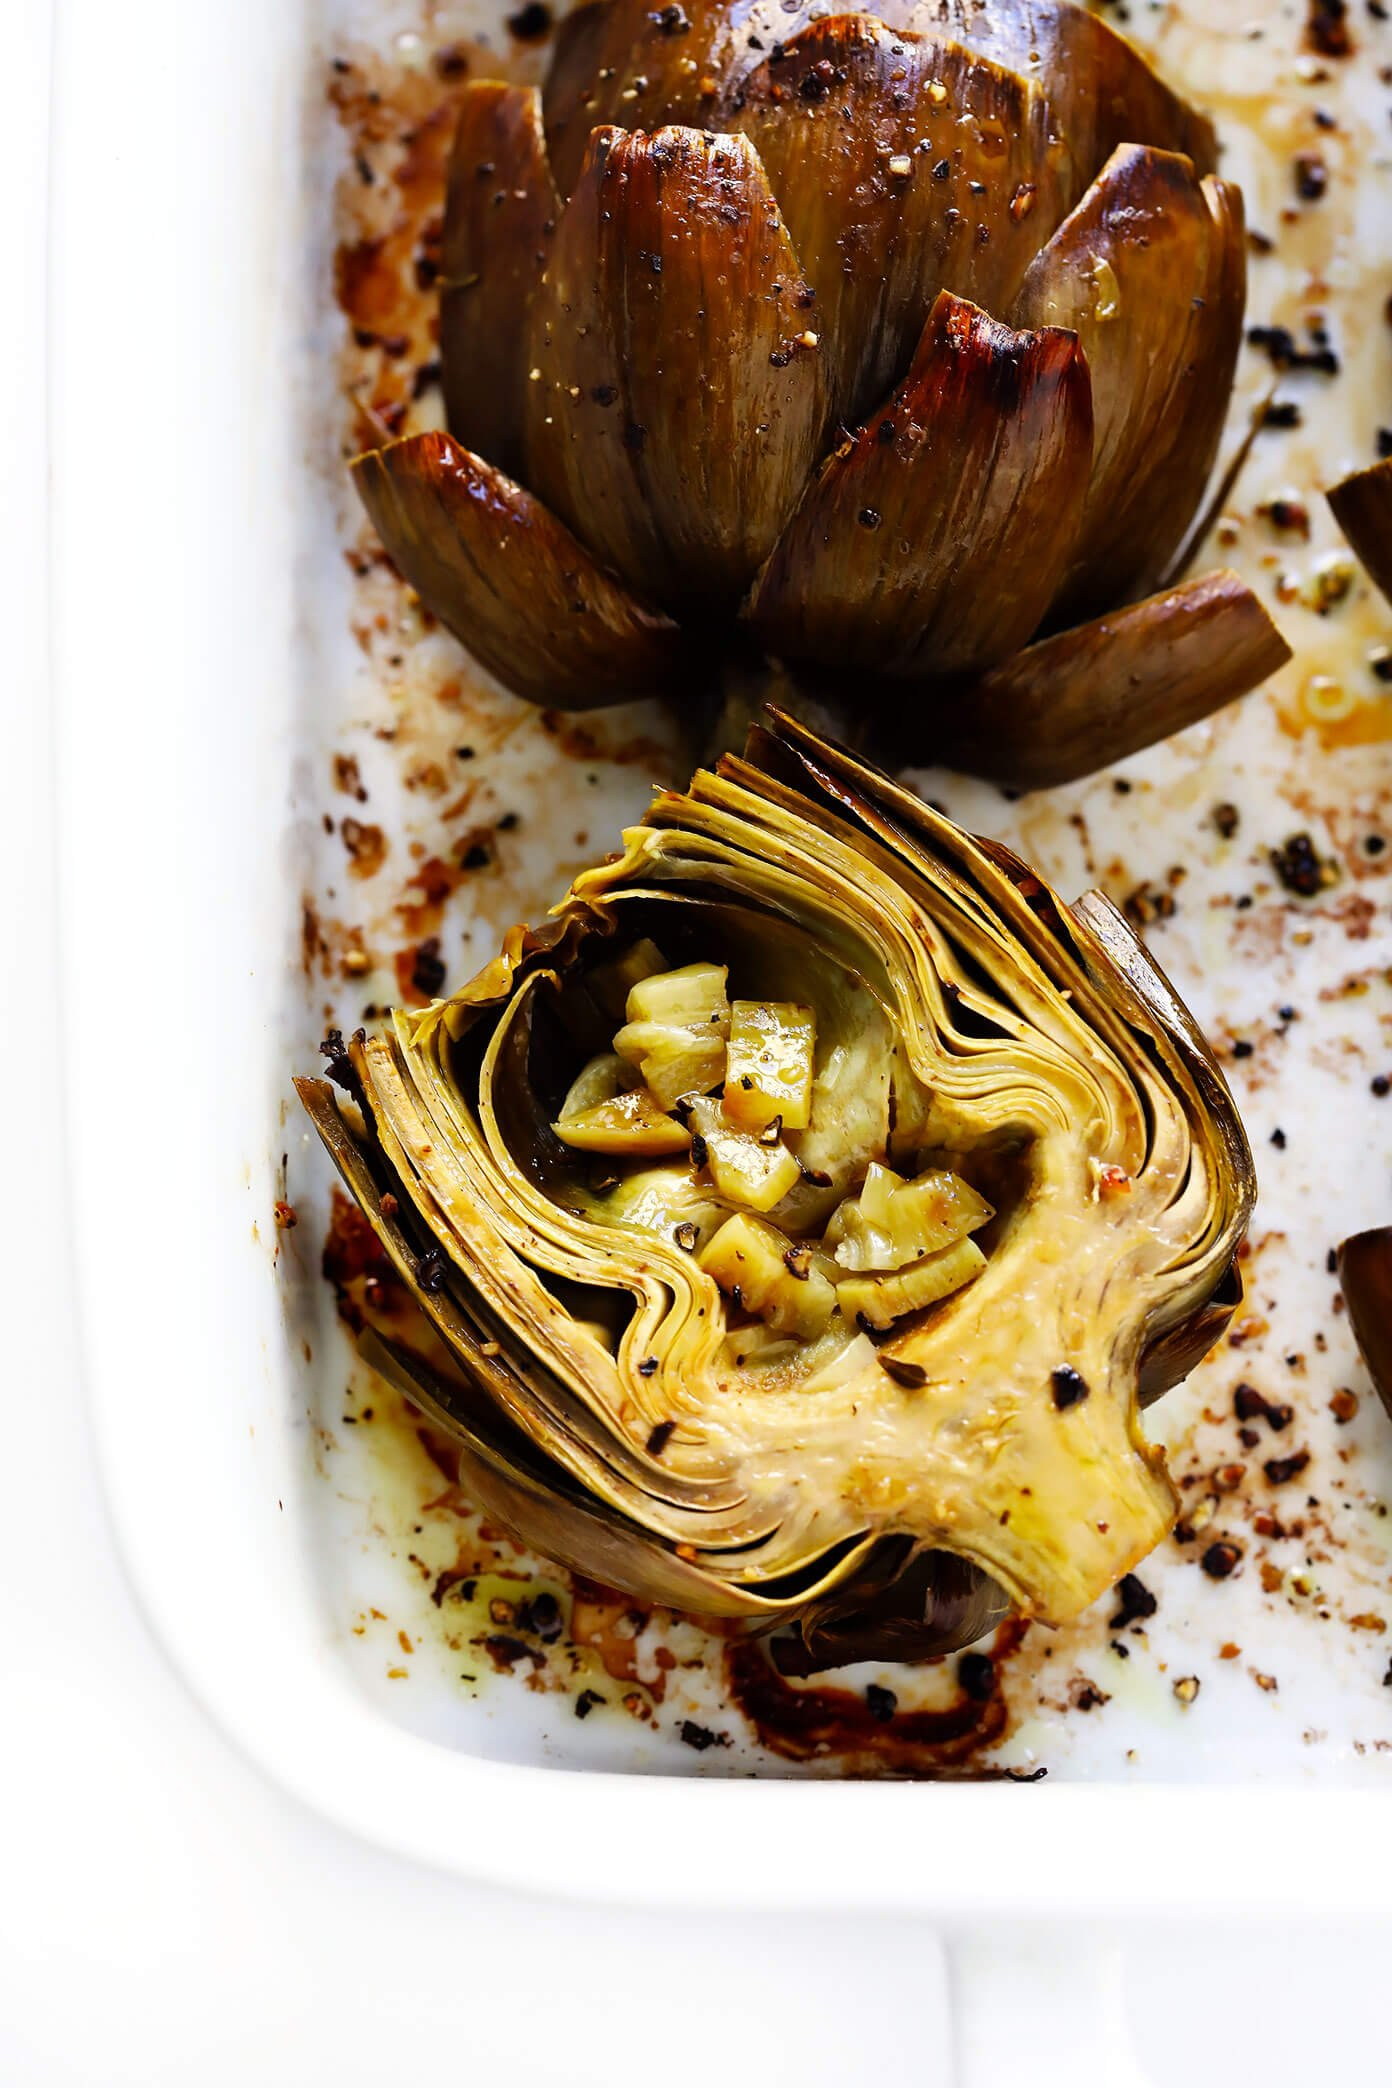 How To Eat Roasted Artichokes (with Roasted Garlic)